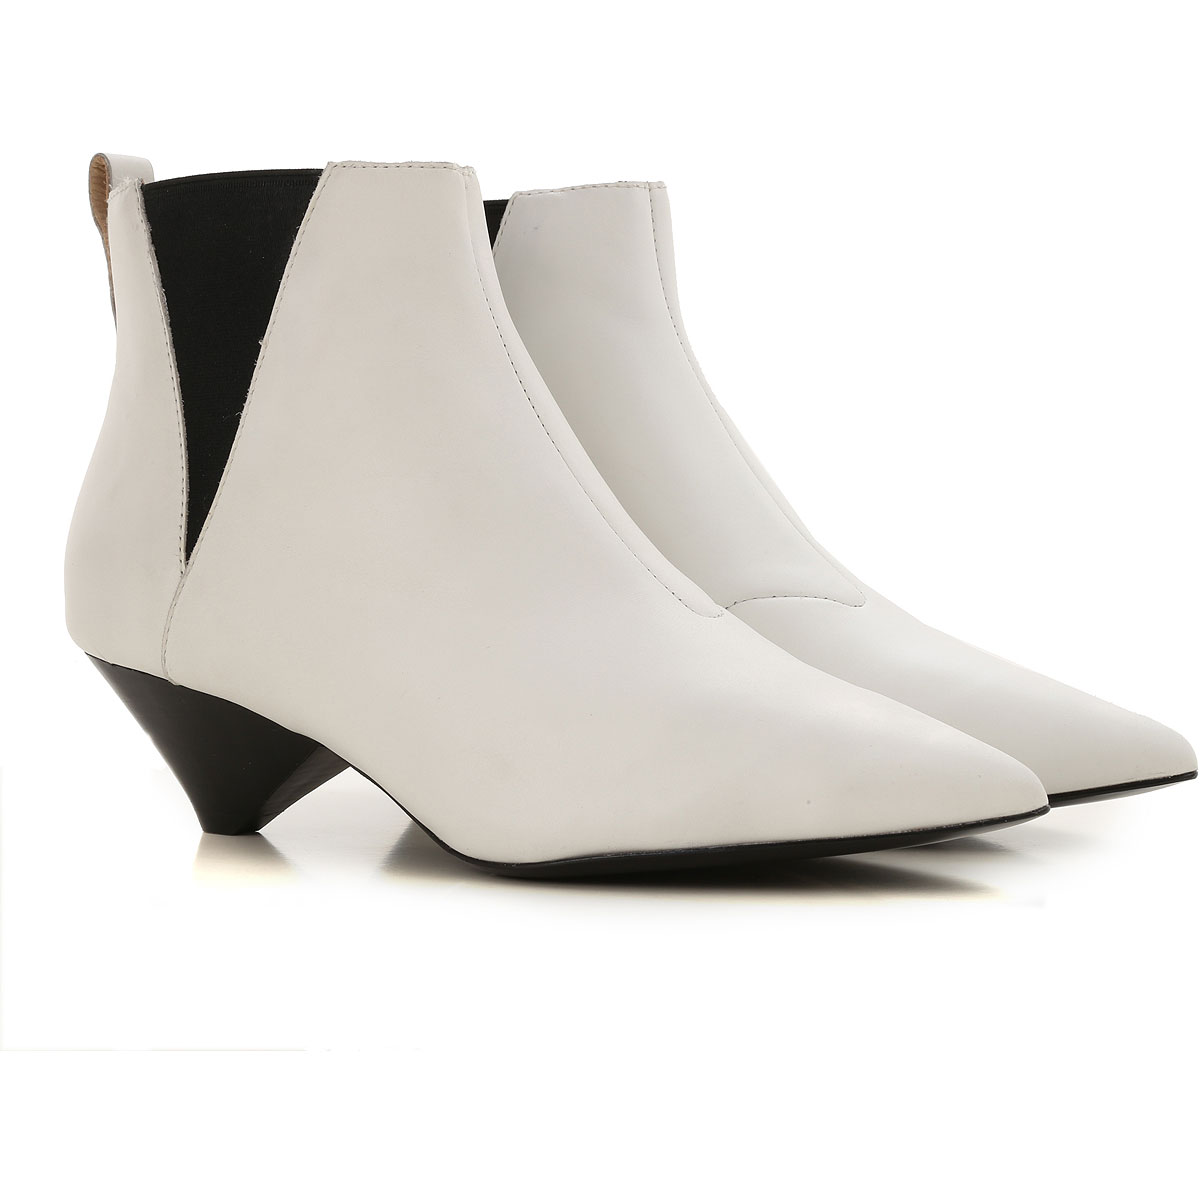 Ash Boots for Women Booties On Sale USA - GOOFASH